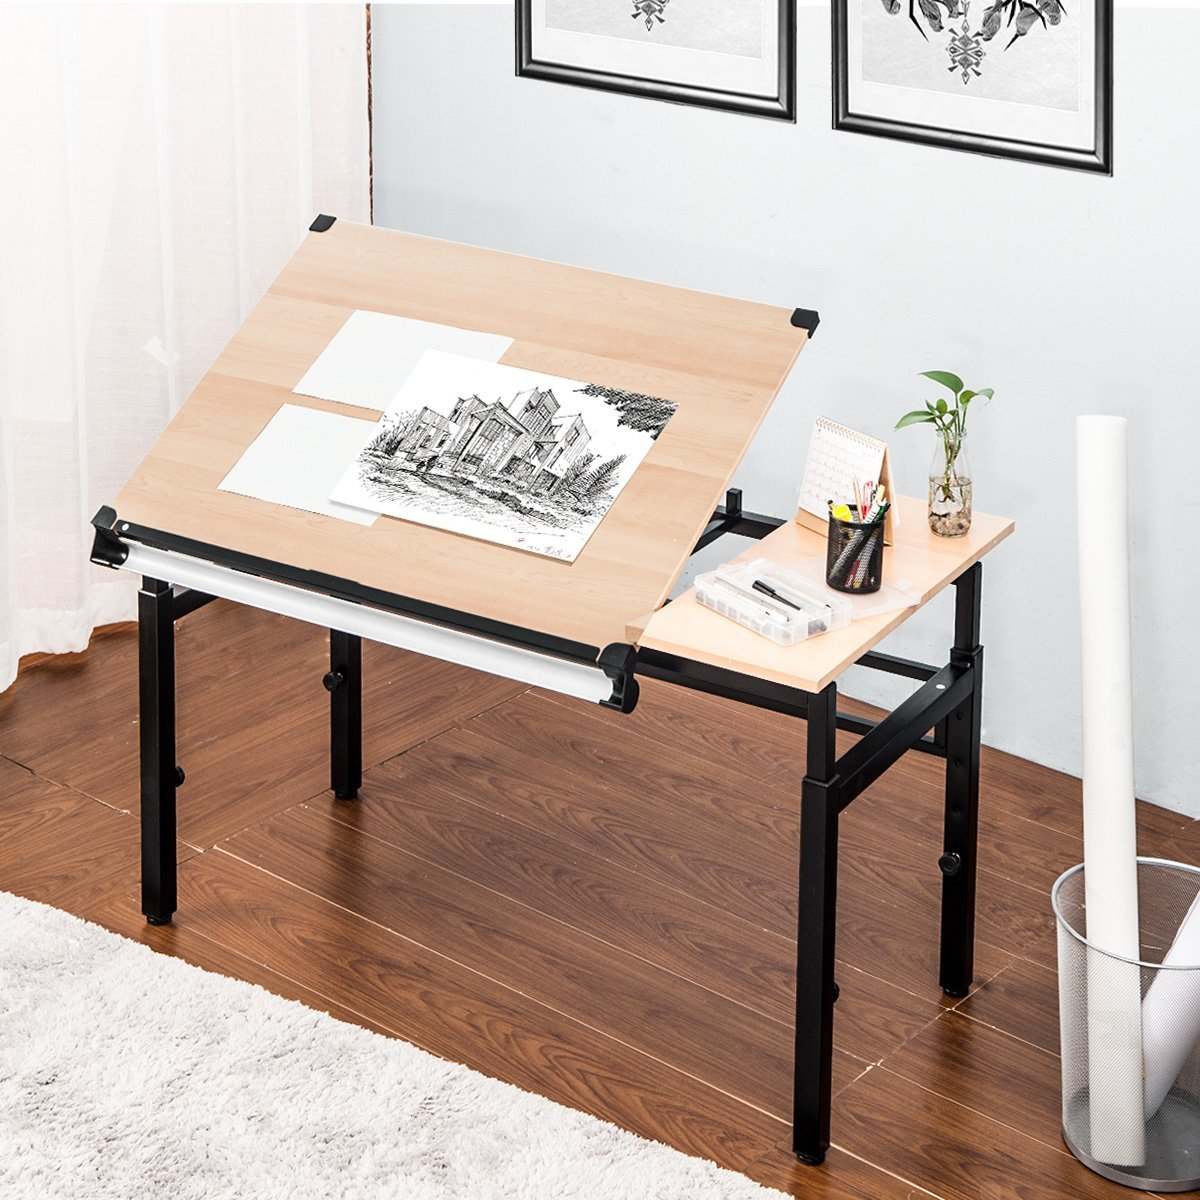 Harper&Bright Designs Drafting and Hobby Table Drawing Desk with Folding Top and Adjustable legs (Oak)